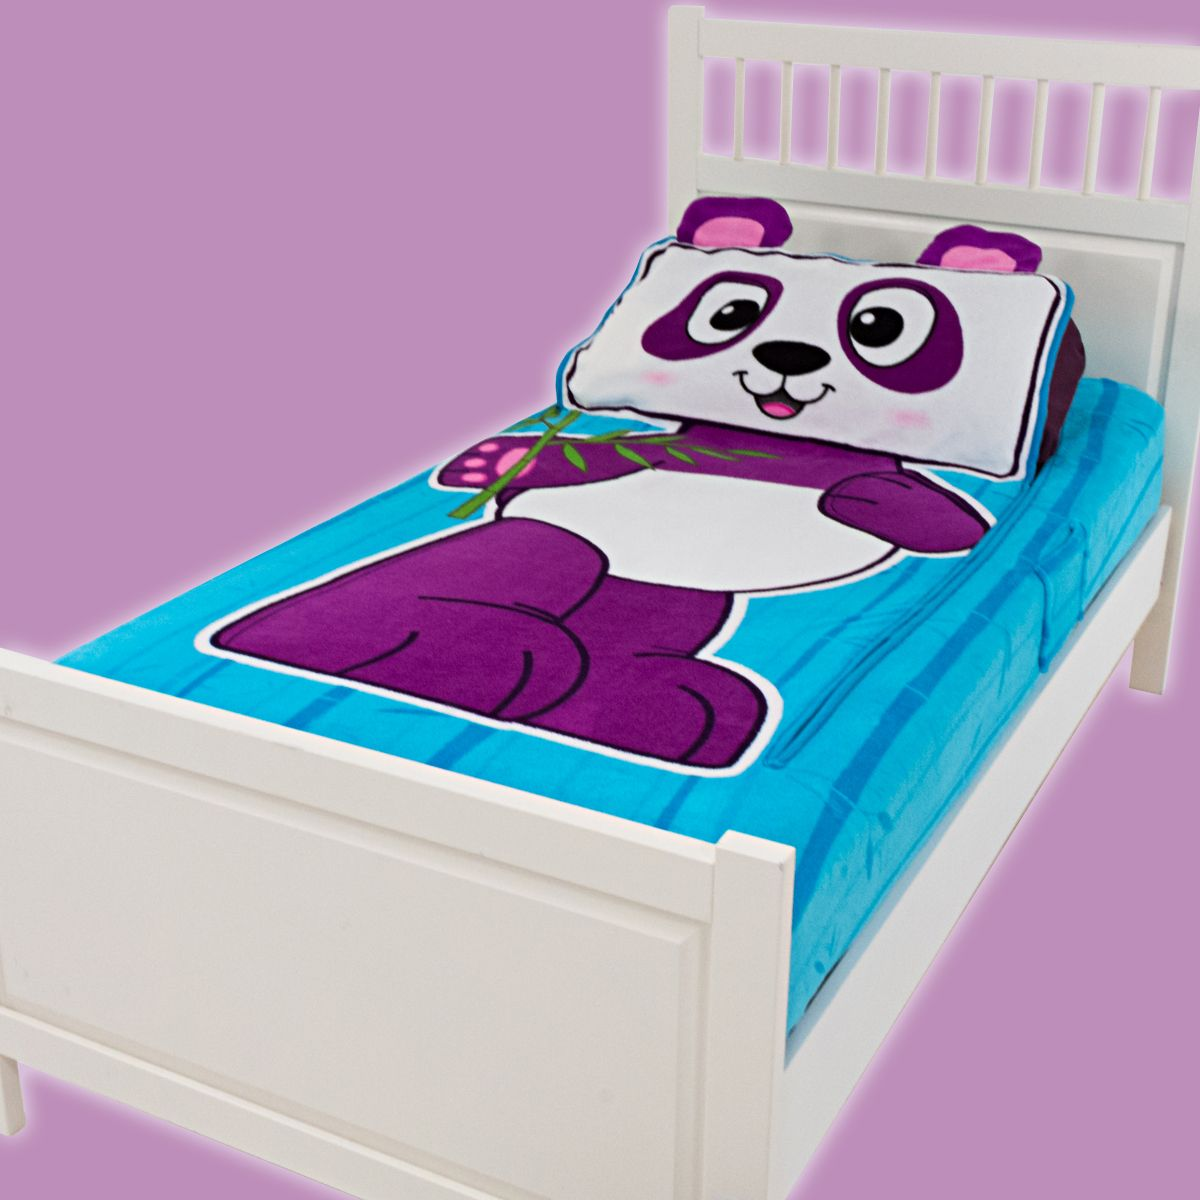 Zippysack Fits Over Your Kid S Bed Like A Dream With